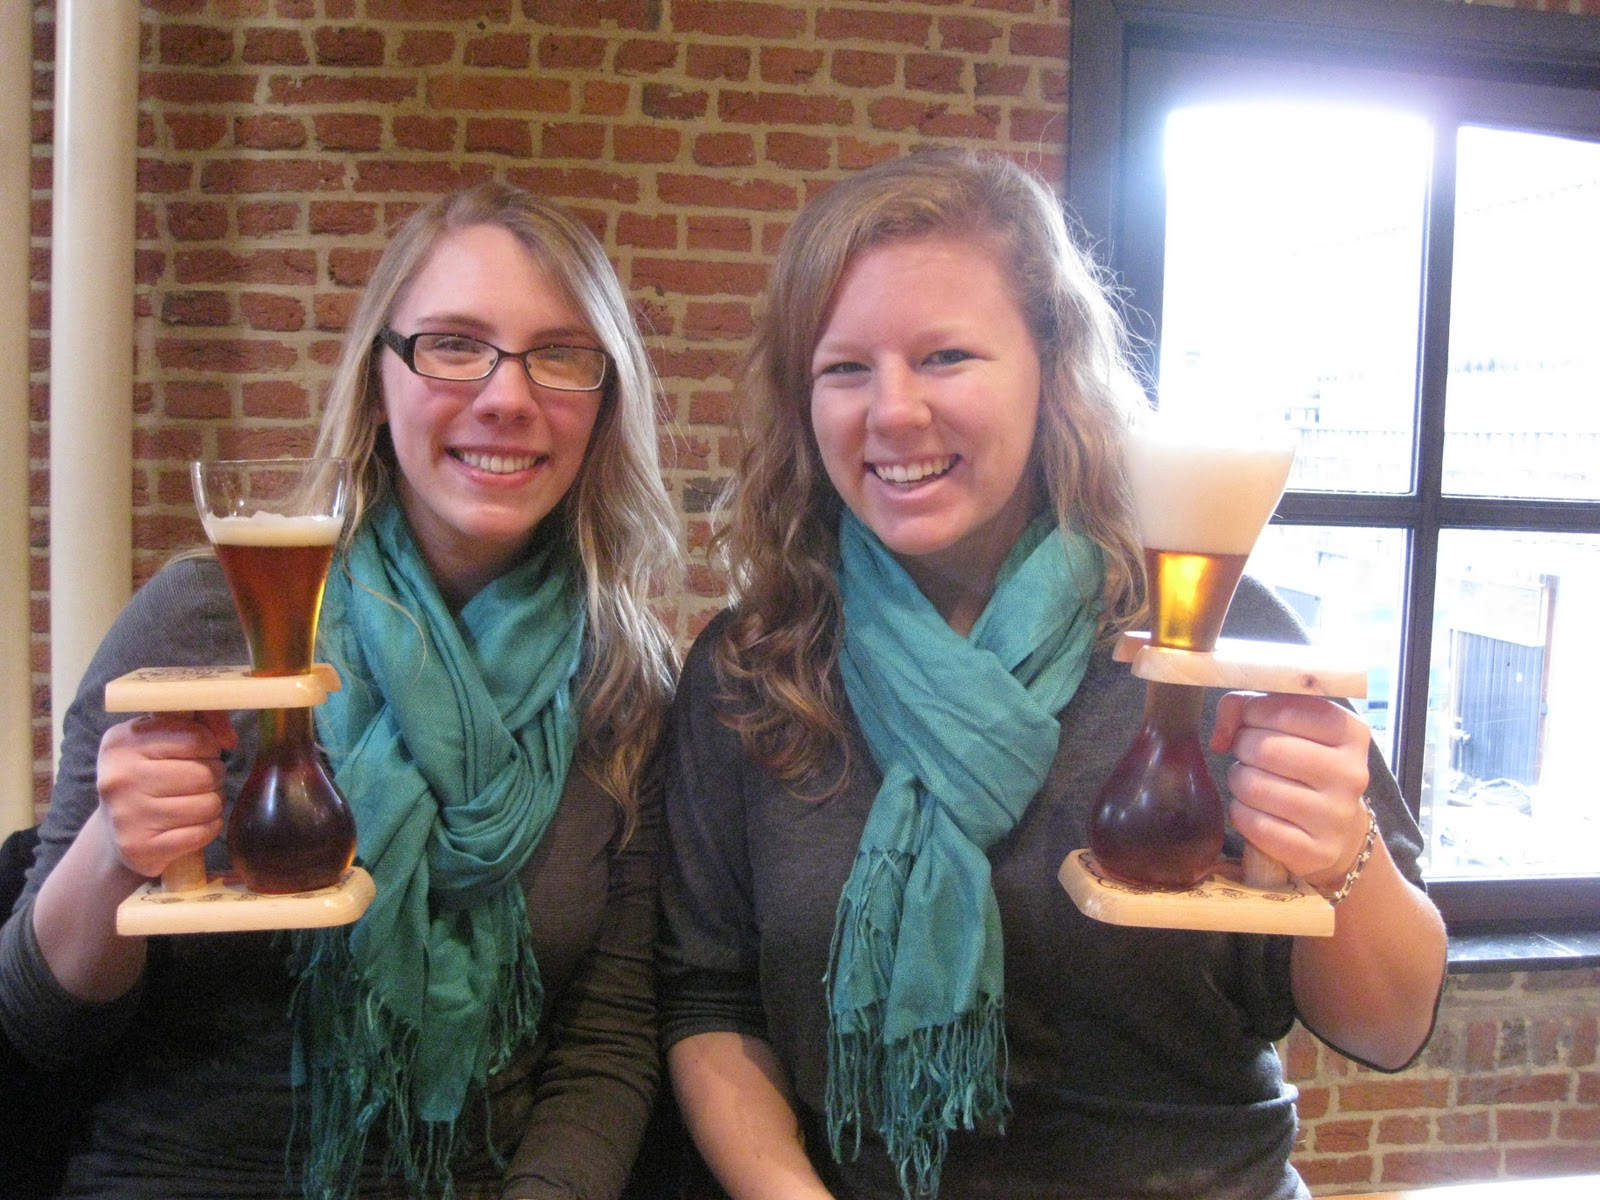 Two American women holding Kwak beers by the fram